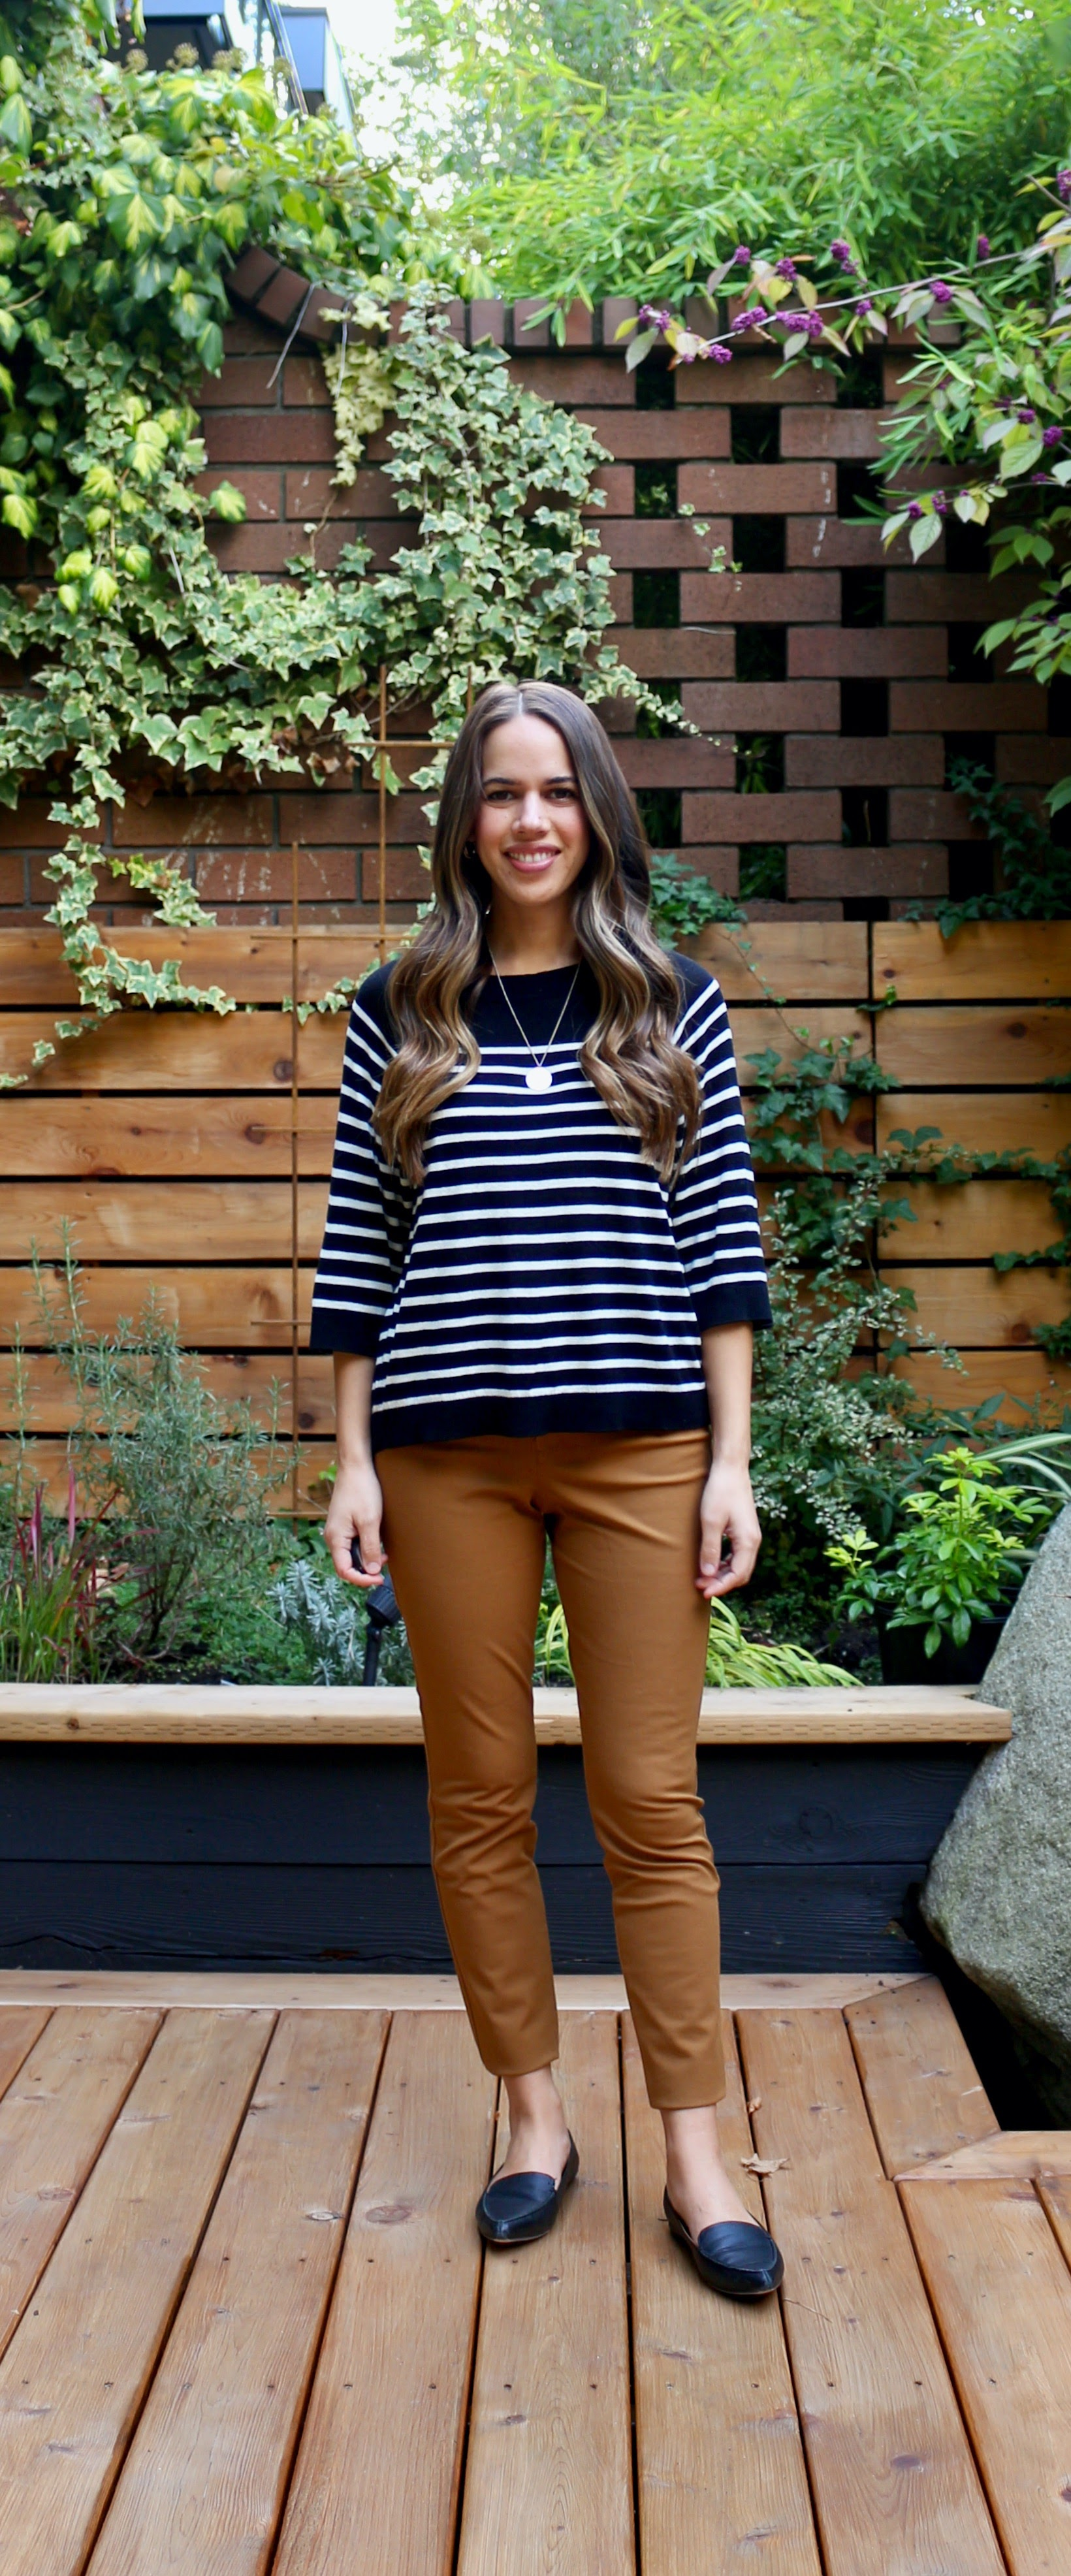 Jules in Flats - Striped Sweater with Cognac Ankle Pants (Business Casual Workwear on a Budget)